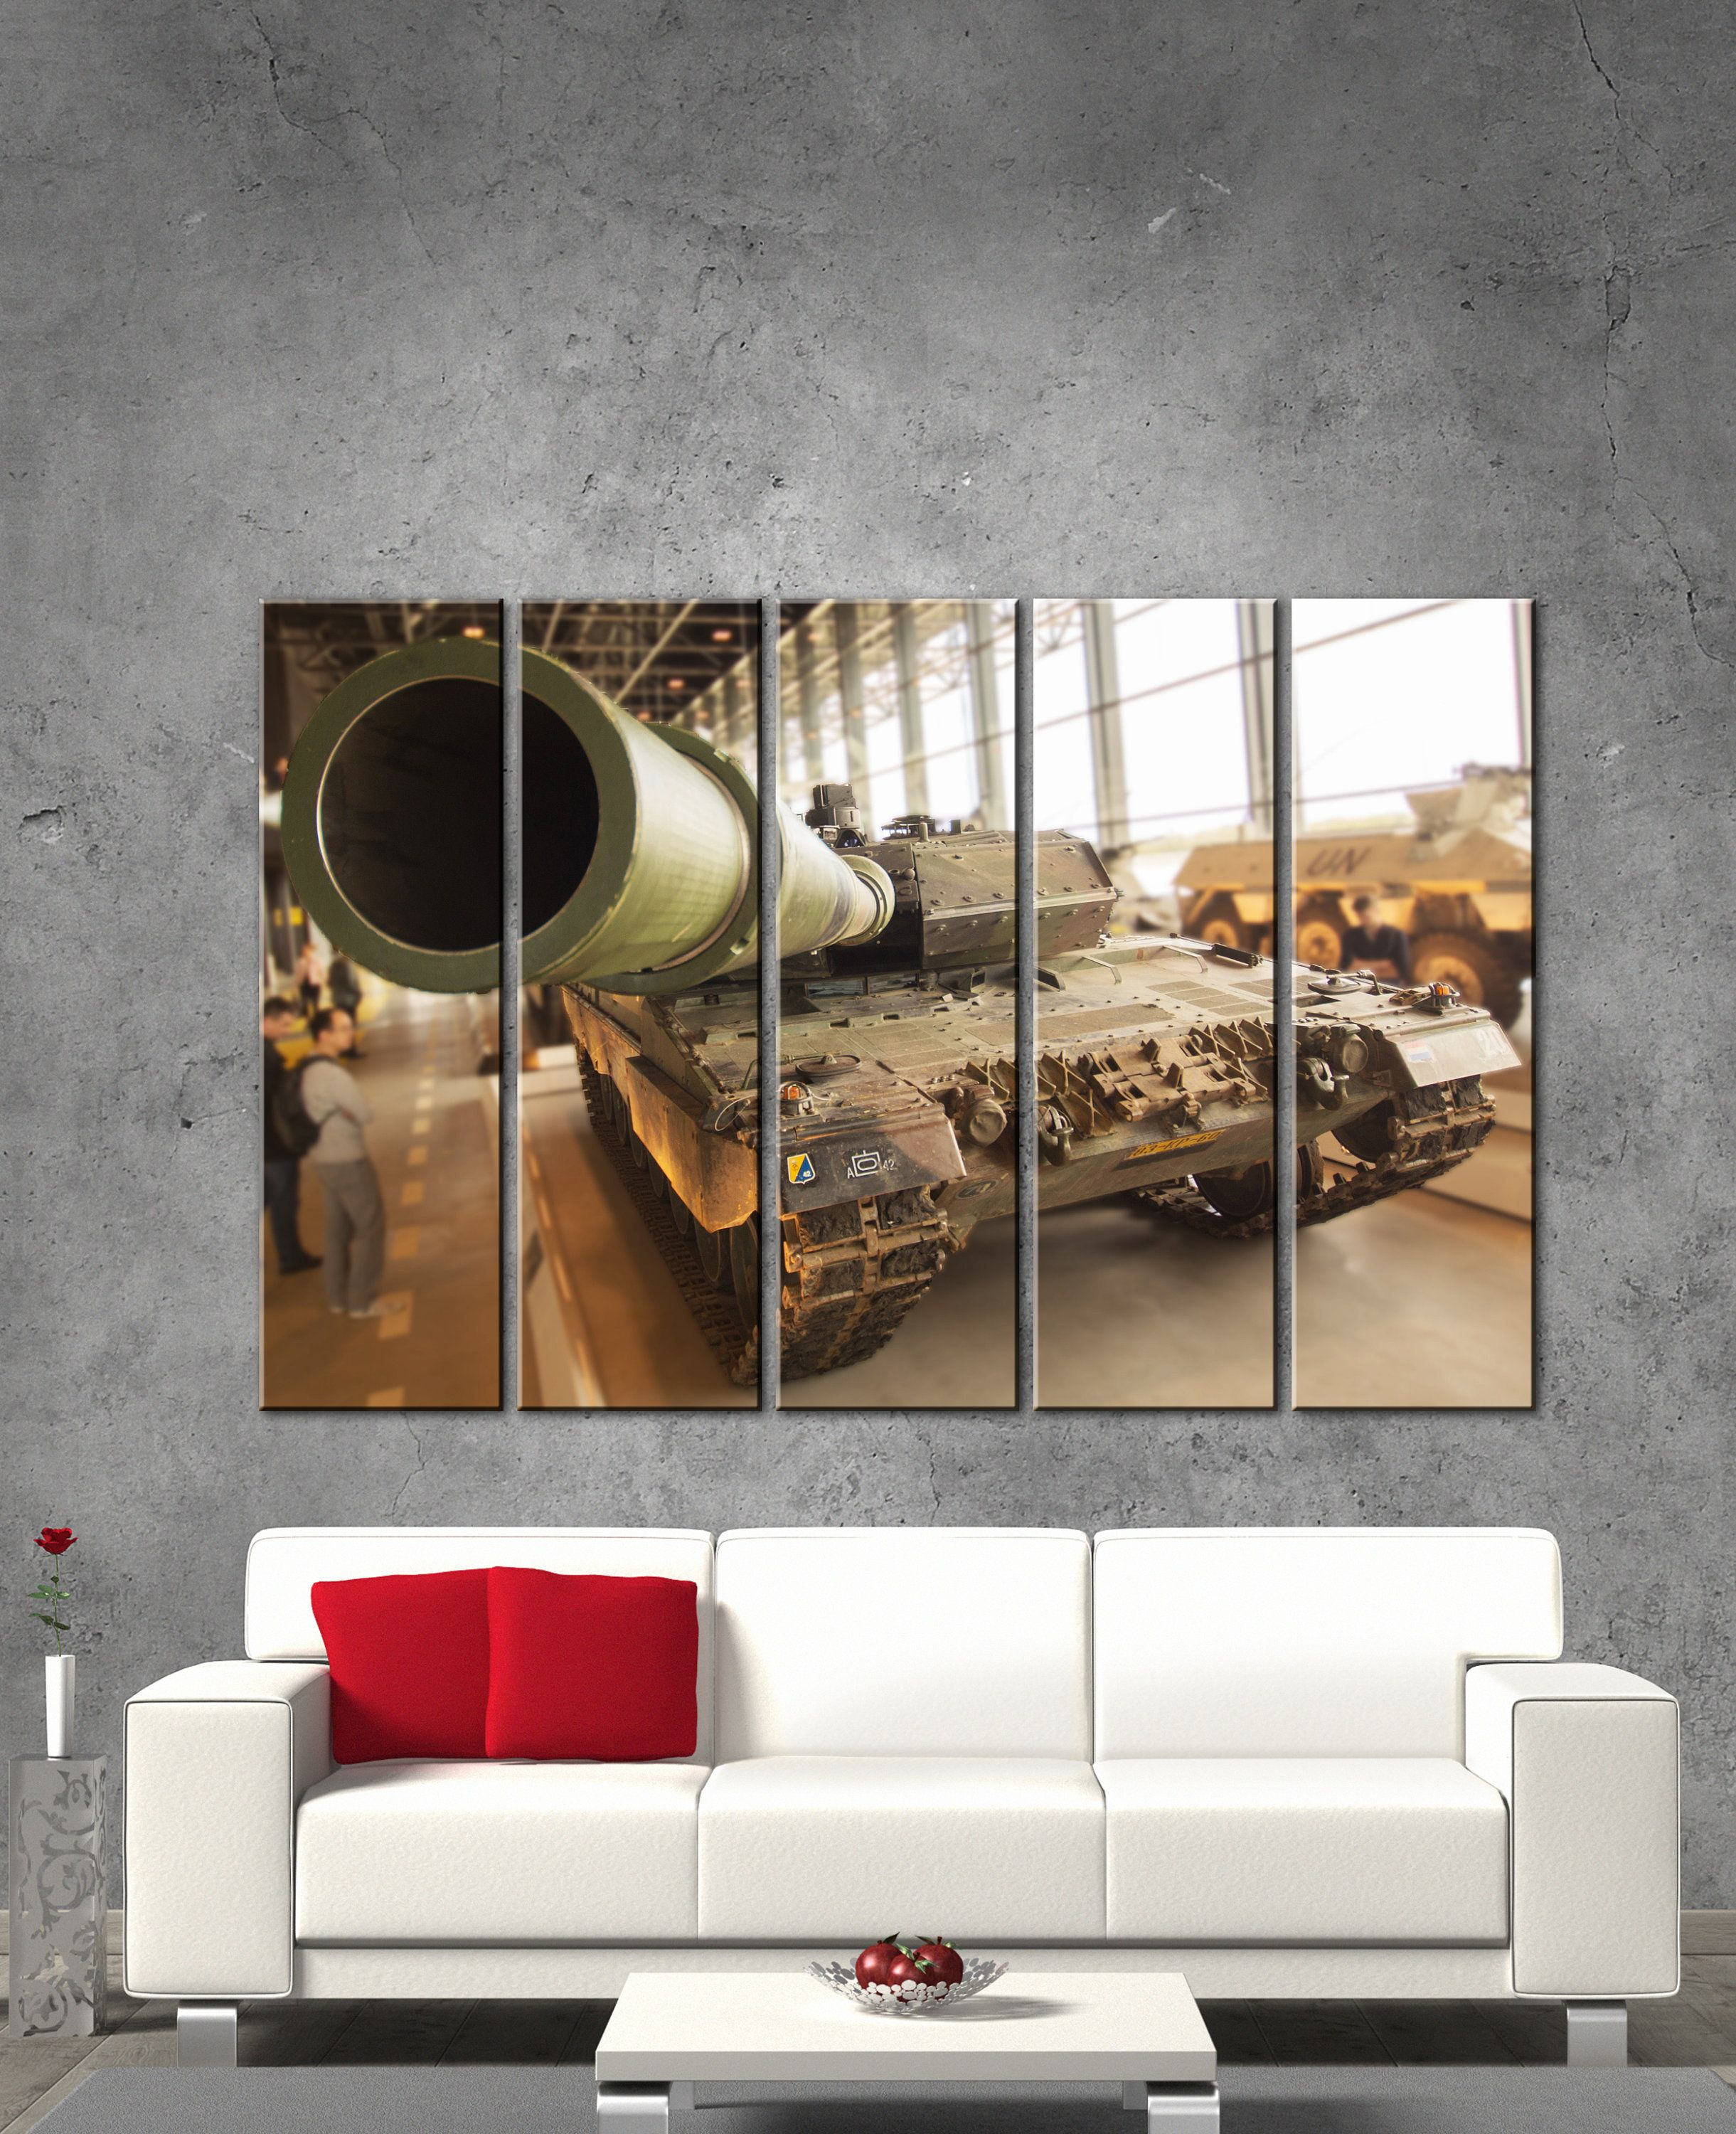 Panzer Print Wall Art Canvas Tank Print Tank Canvas Tank Wall Art Panzer Decor Tank Photoprint Military Home Art Army W Wall Prints Canvas Tank Wall Art Prints